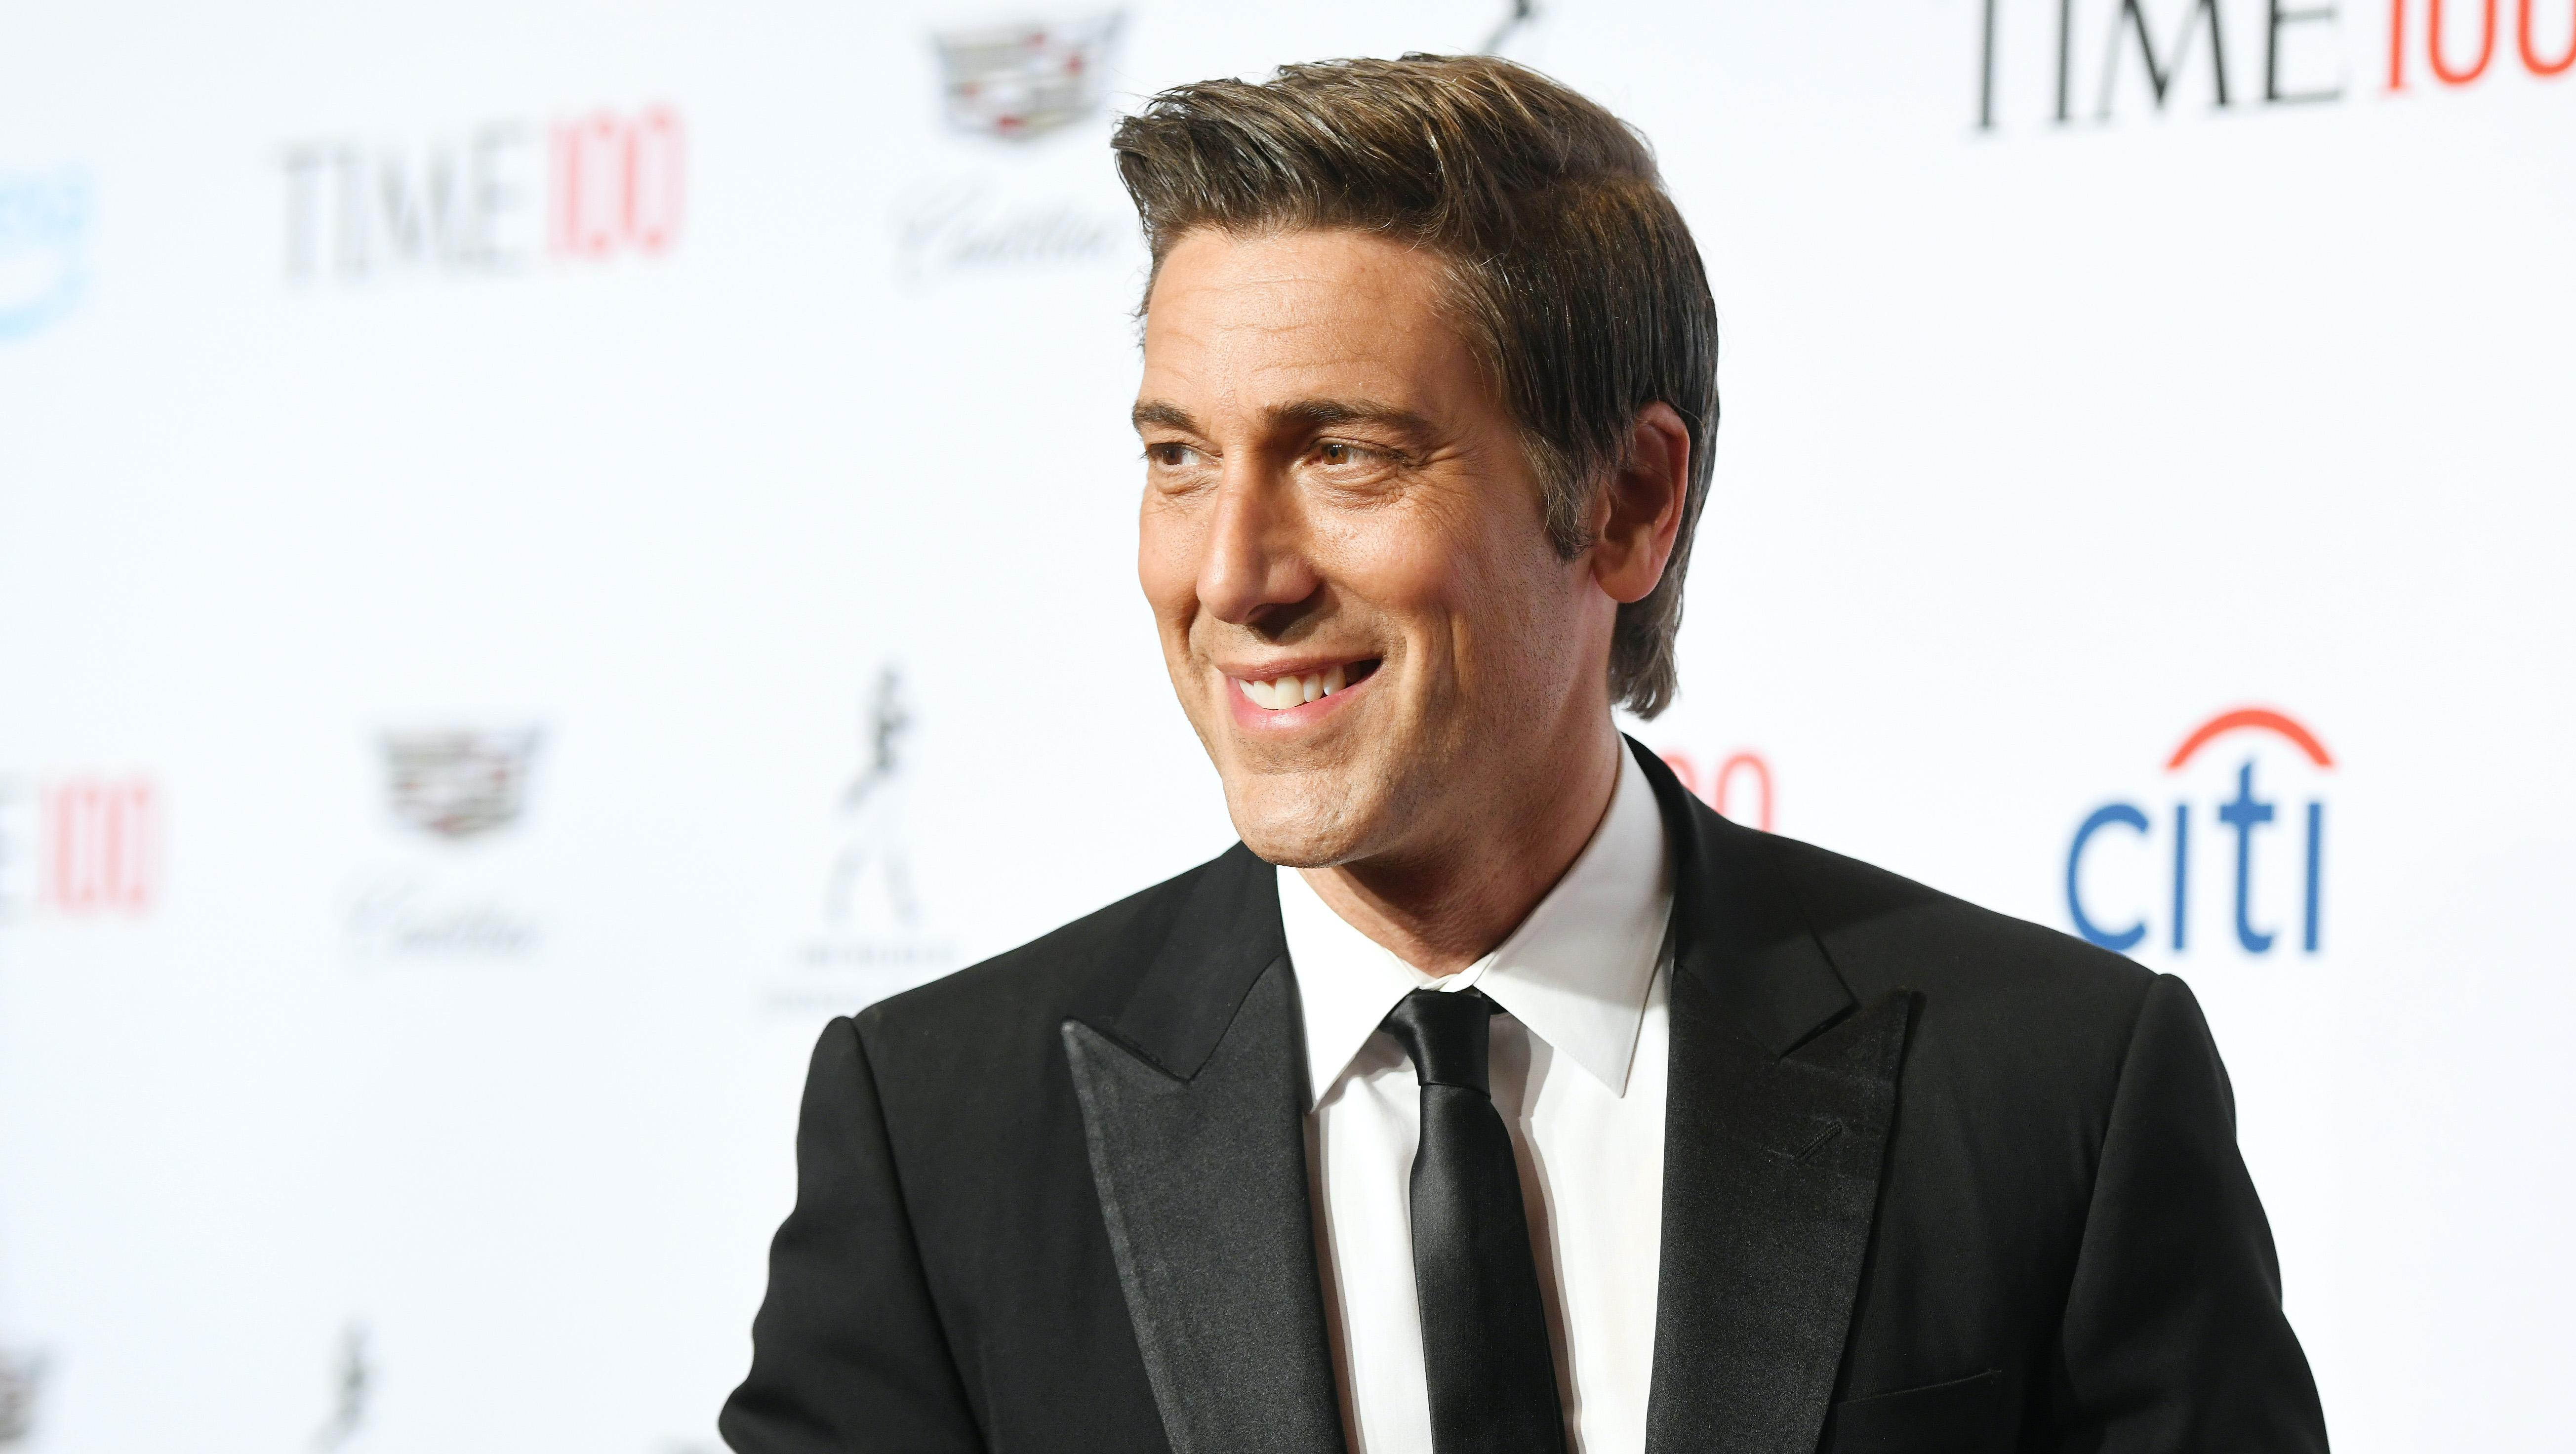 did david muir have an accident